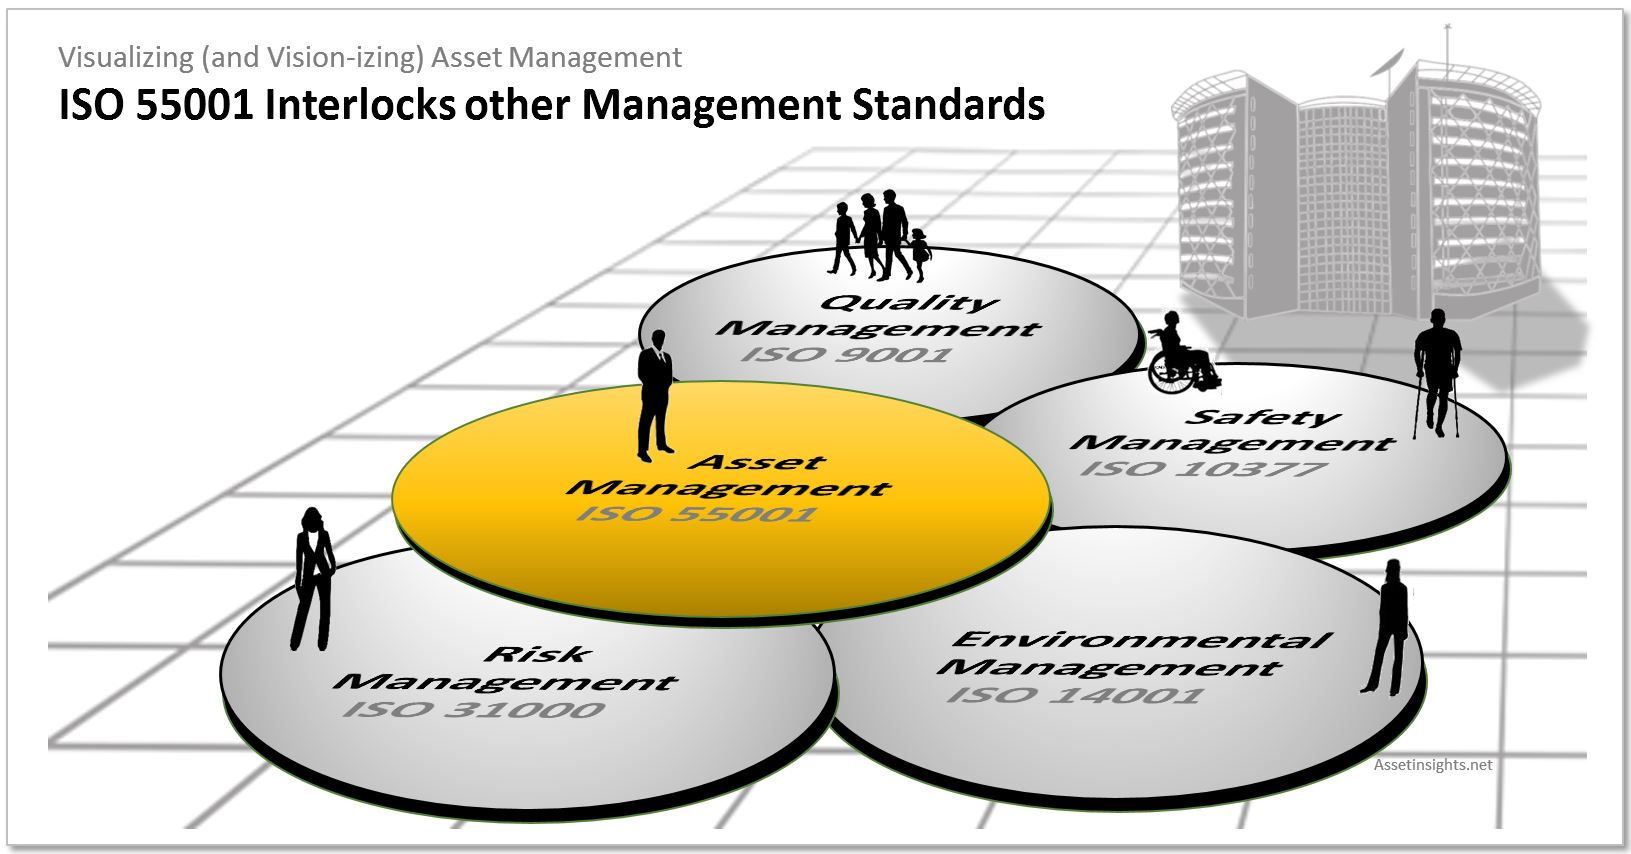 ISO 55001 interlocks with other ISO management standards (such as 9001, 14001, etc.)